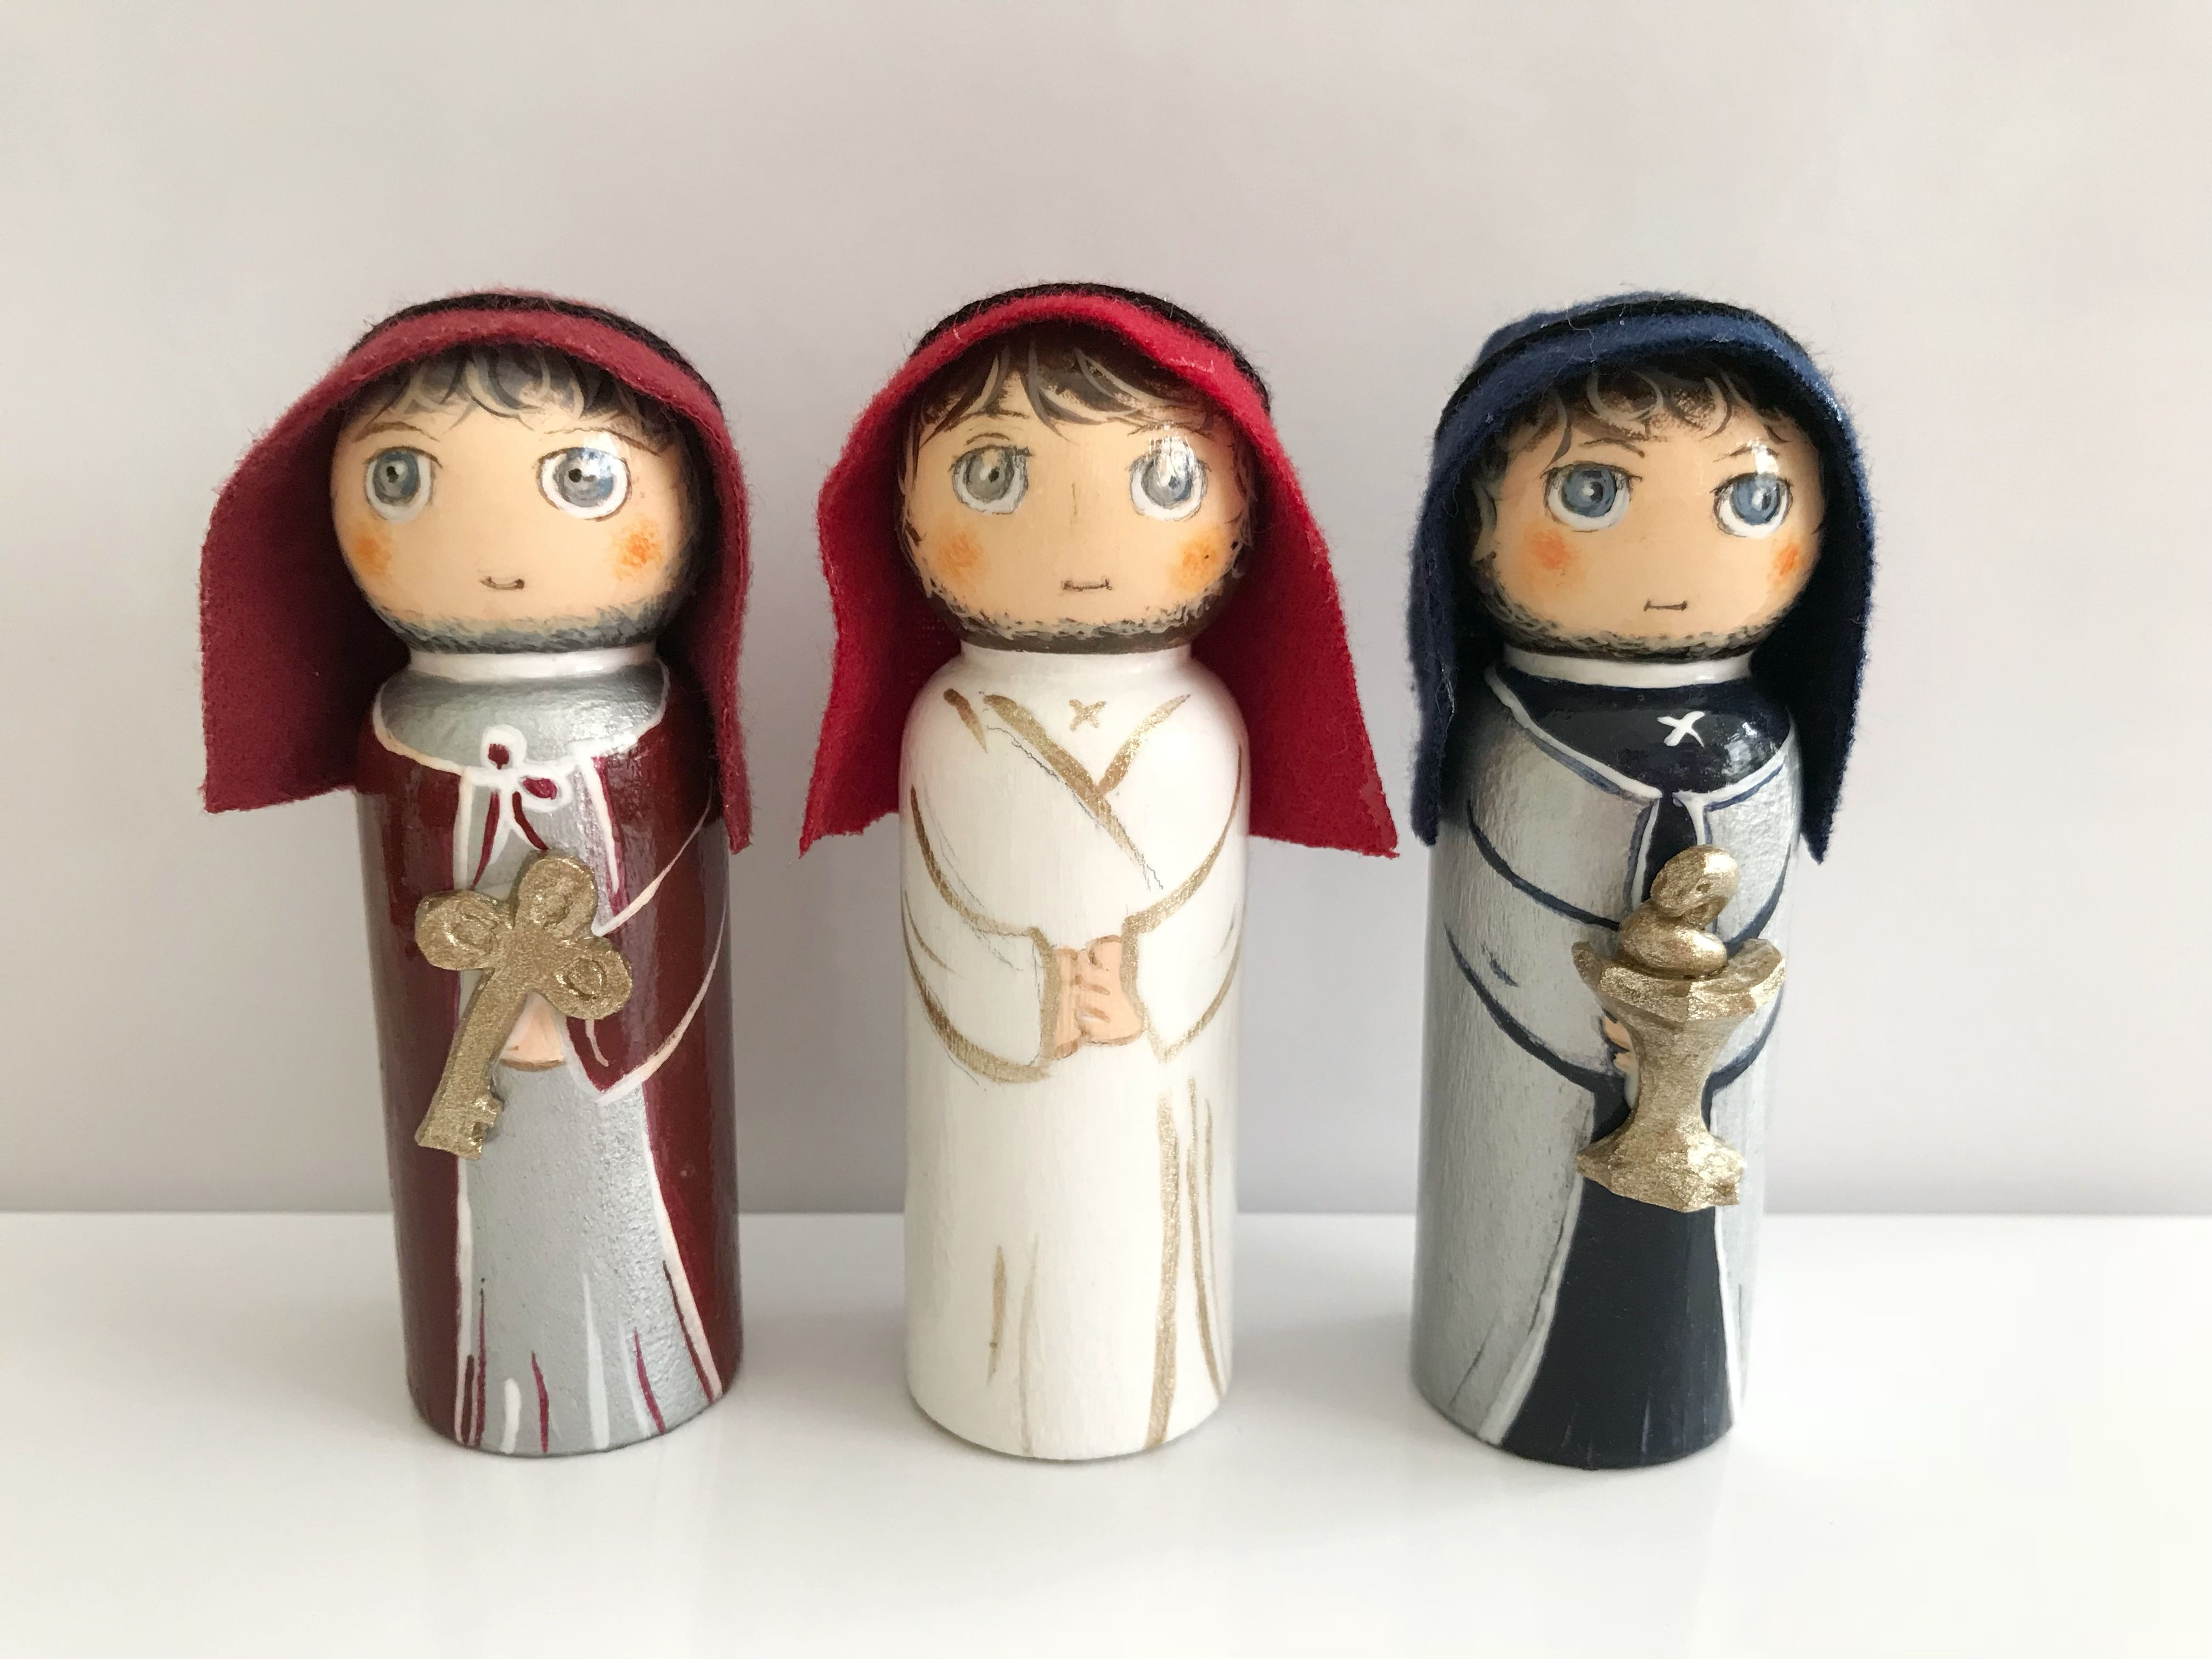 Last Supper Peg Doll Set Easter Apostles With Symbols Attributes